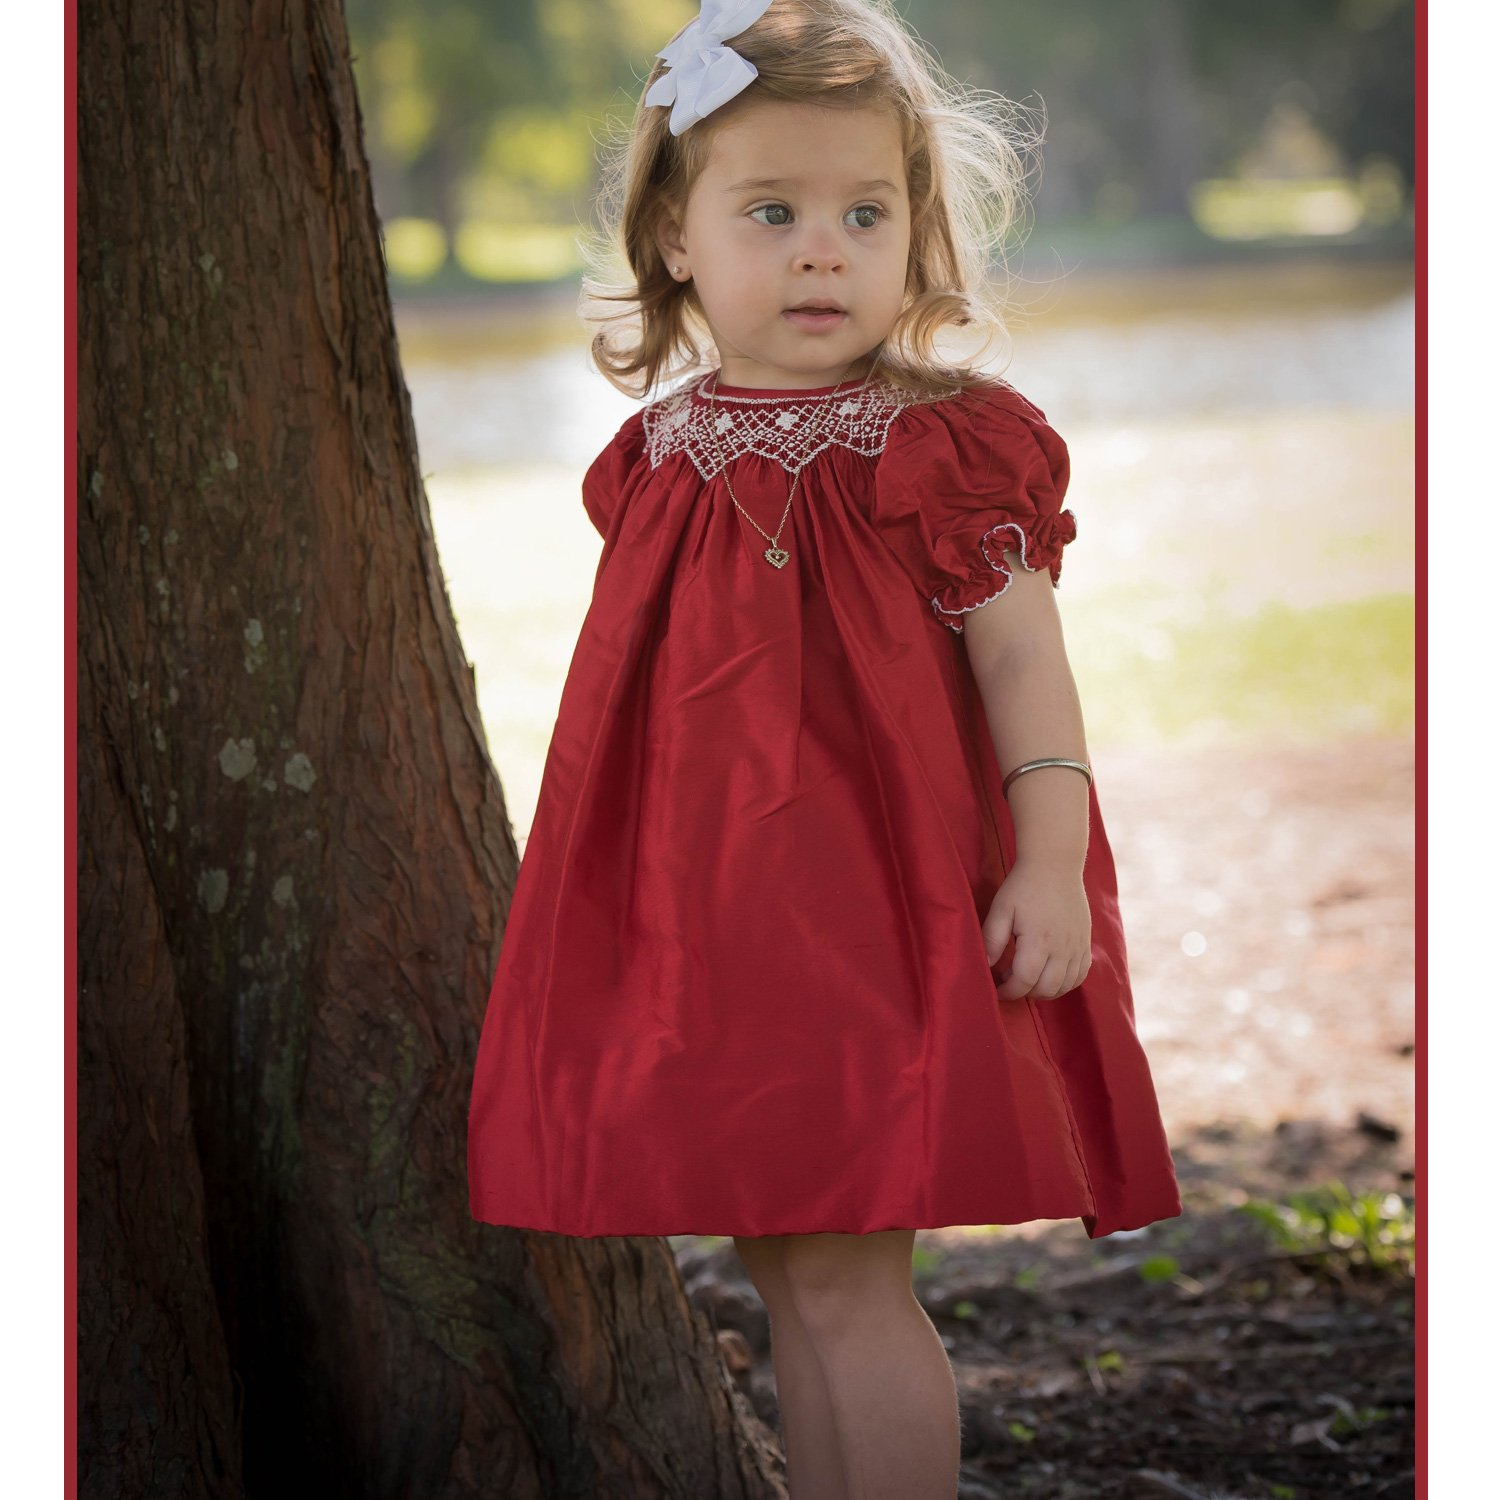 Beautiful Christmas Dresses for Toddlers in Red | Baby Bling Street Baby Fashion Boutique